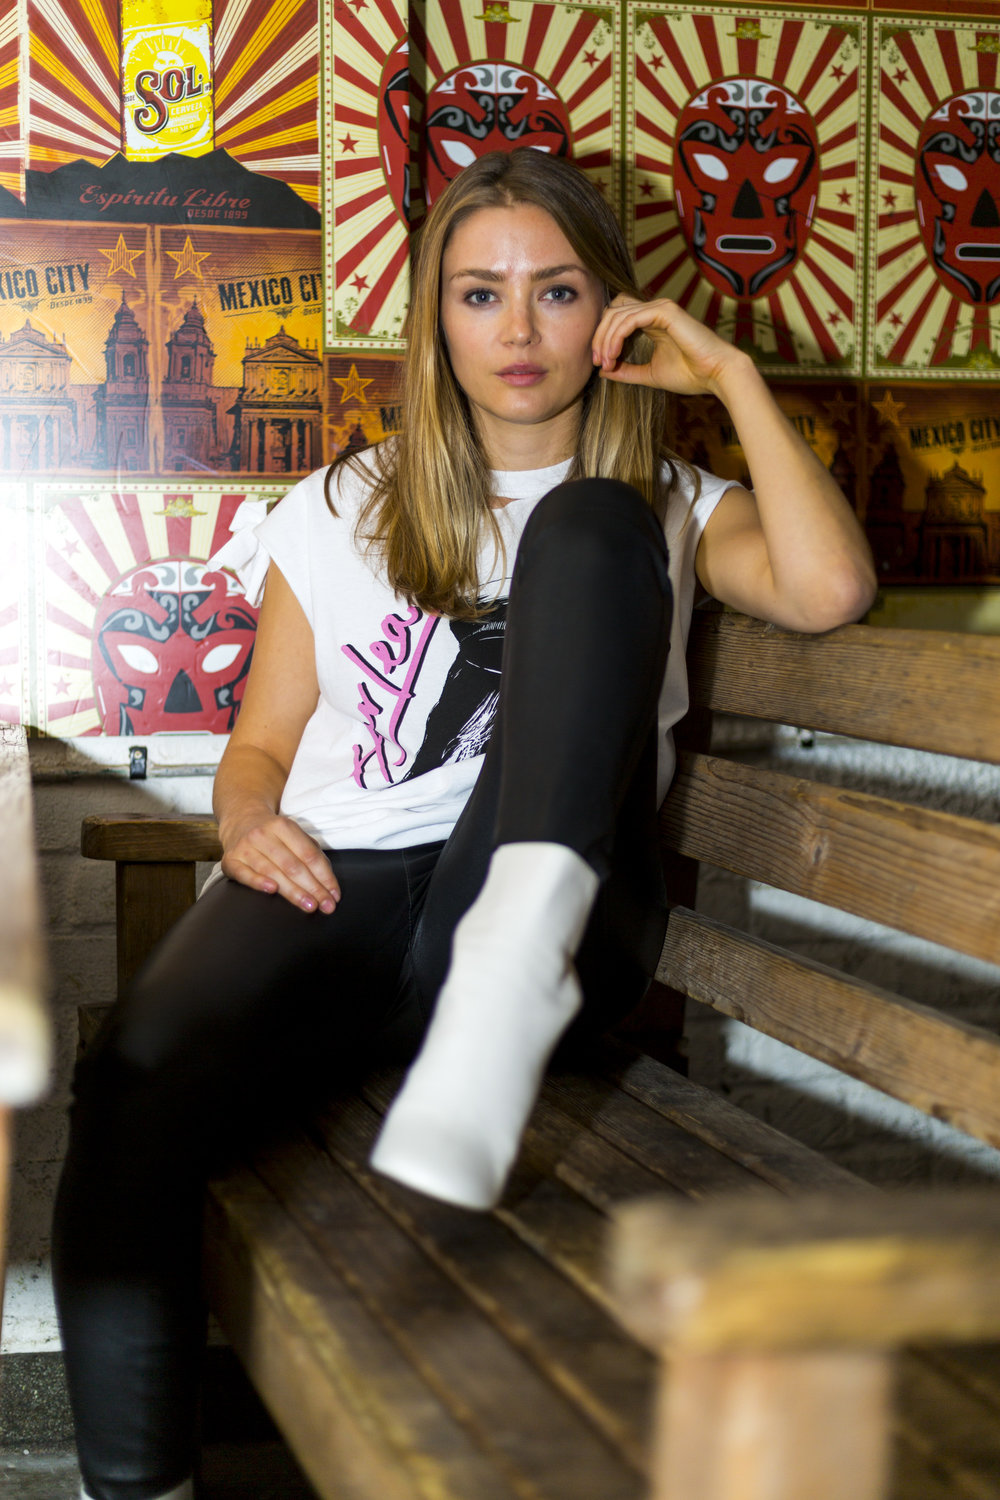 In Conversation with Harlea @ Great Escape 2018 - With hardly anything on the airwaves to date, Harlea seems a bit of an enigma in the music world, but that doesn't mean she doesn't have things brewing.